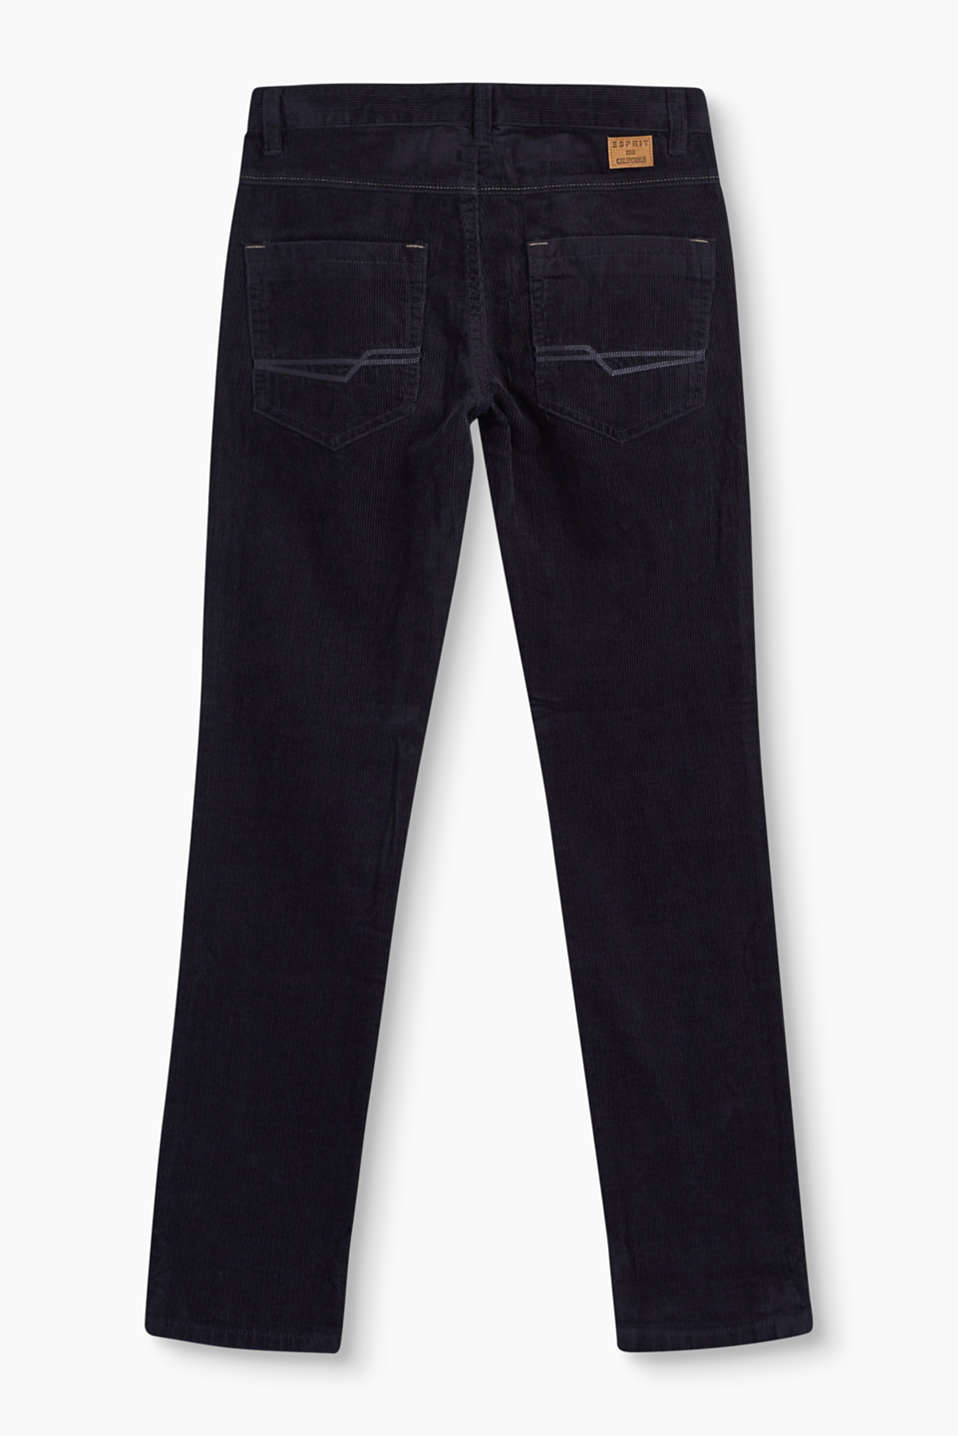 Cotton cord trousers + an adjustable waist